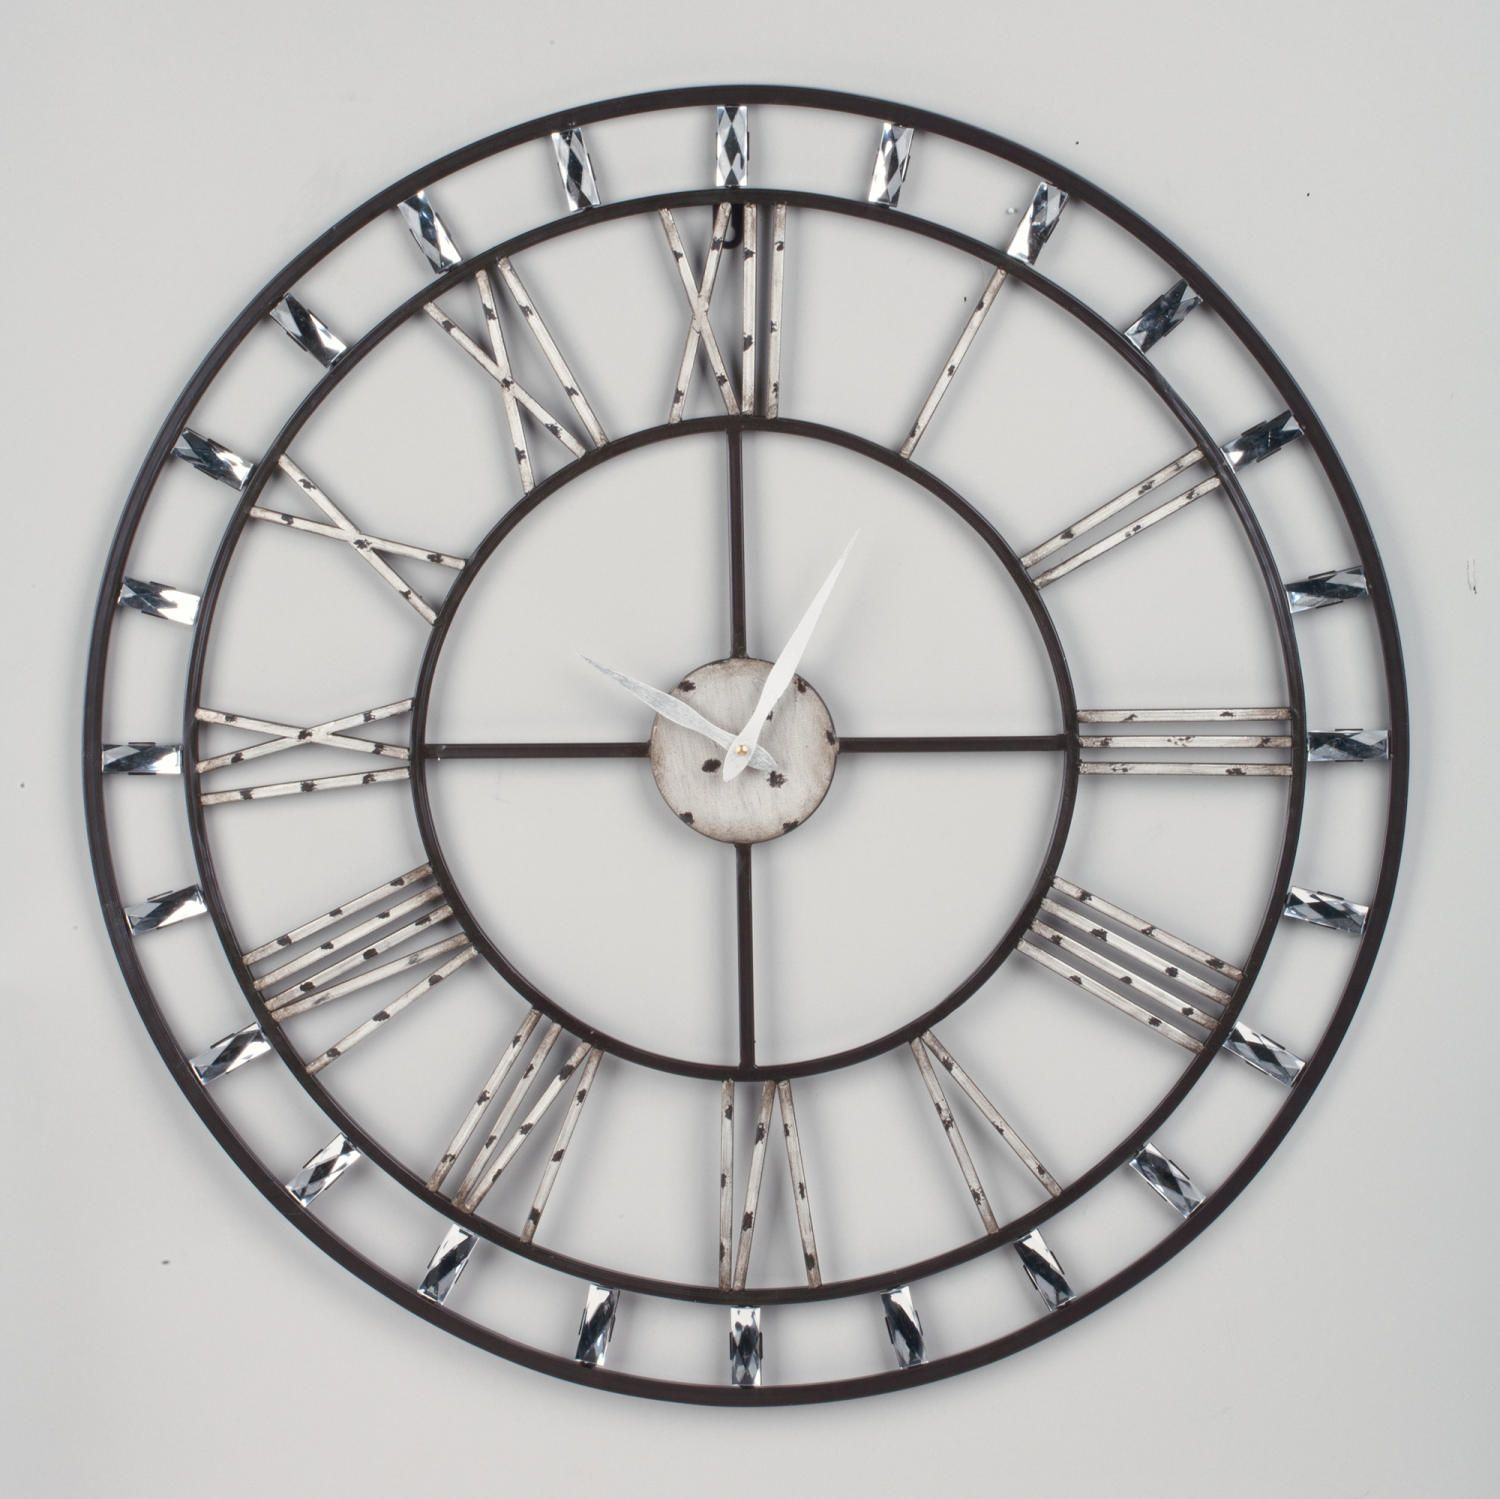 Metal wall clock roman numerals roman numeral wall clock with clear acrylic beads tripar amipublicfo Image collections